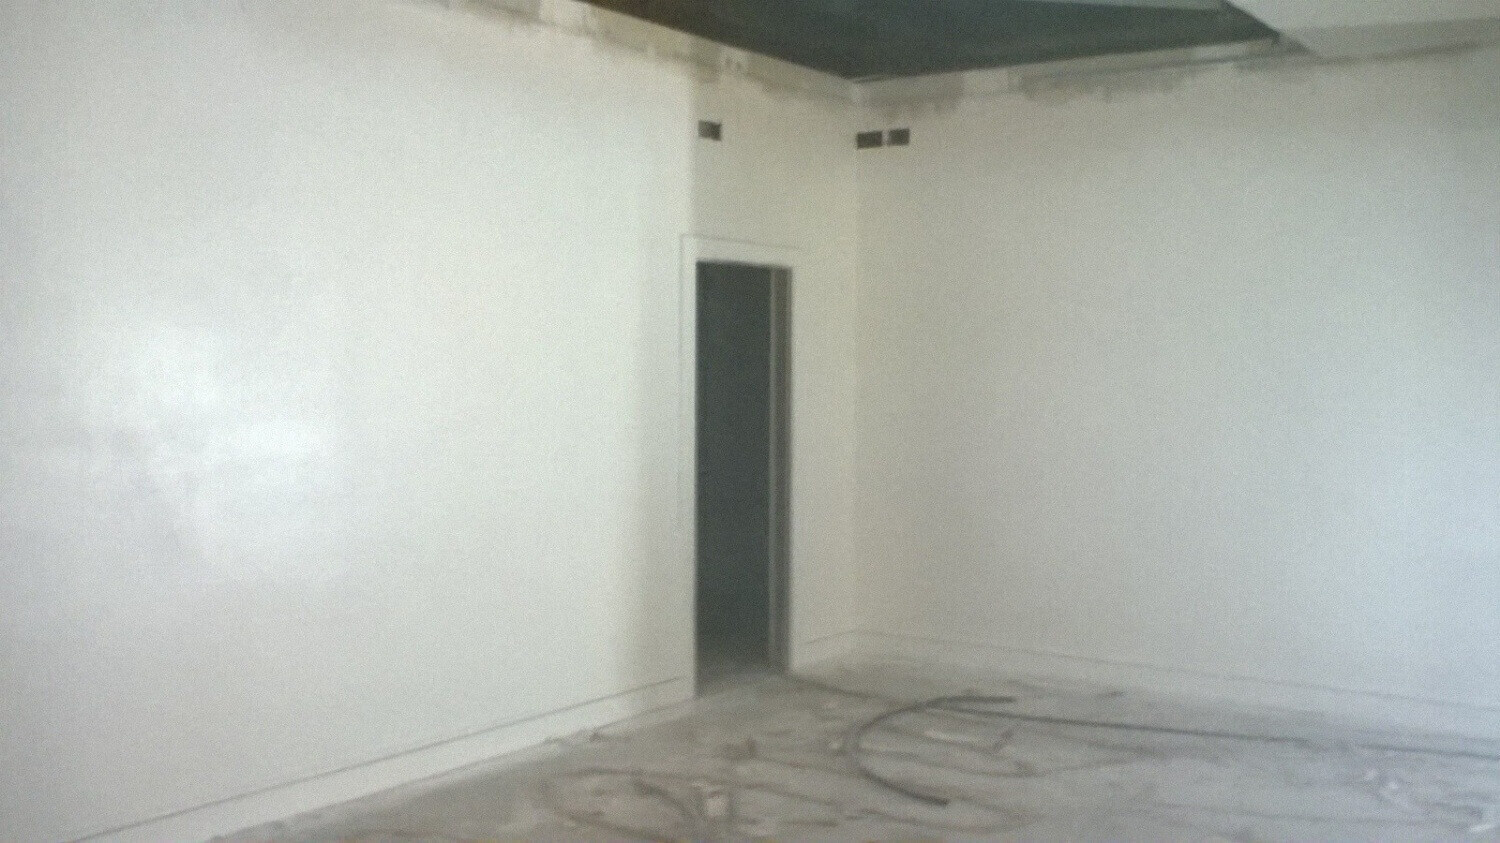 Wall Painting With Airless Paint spraying Luton, Bedfordshire